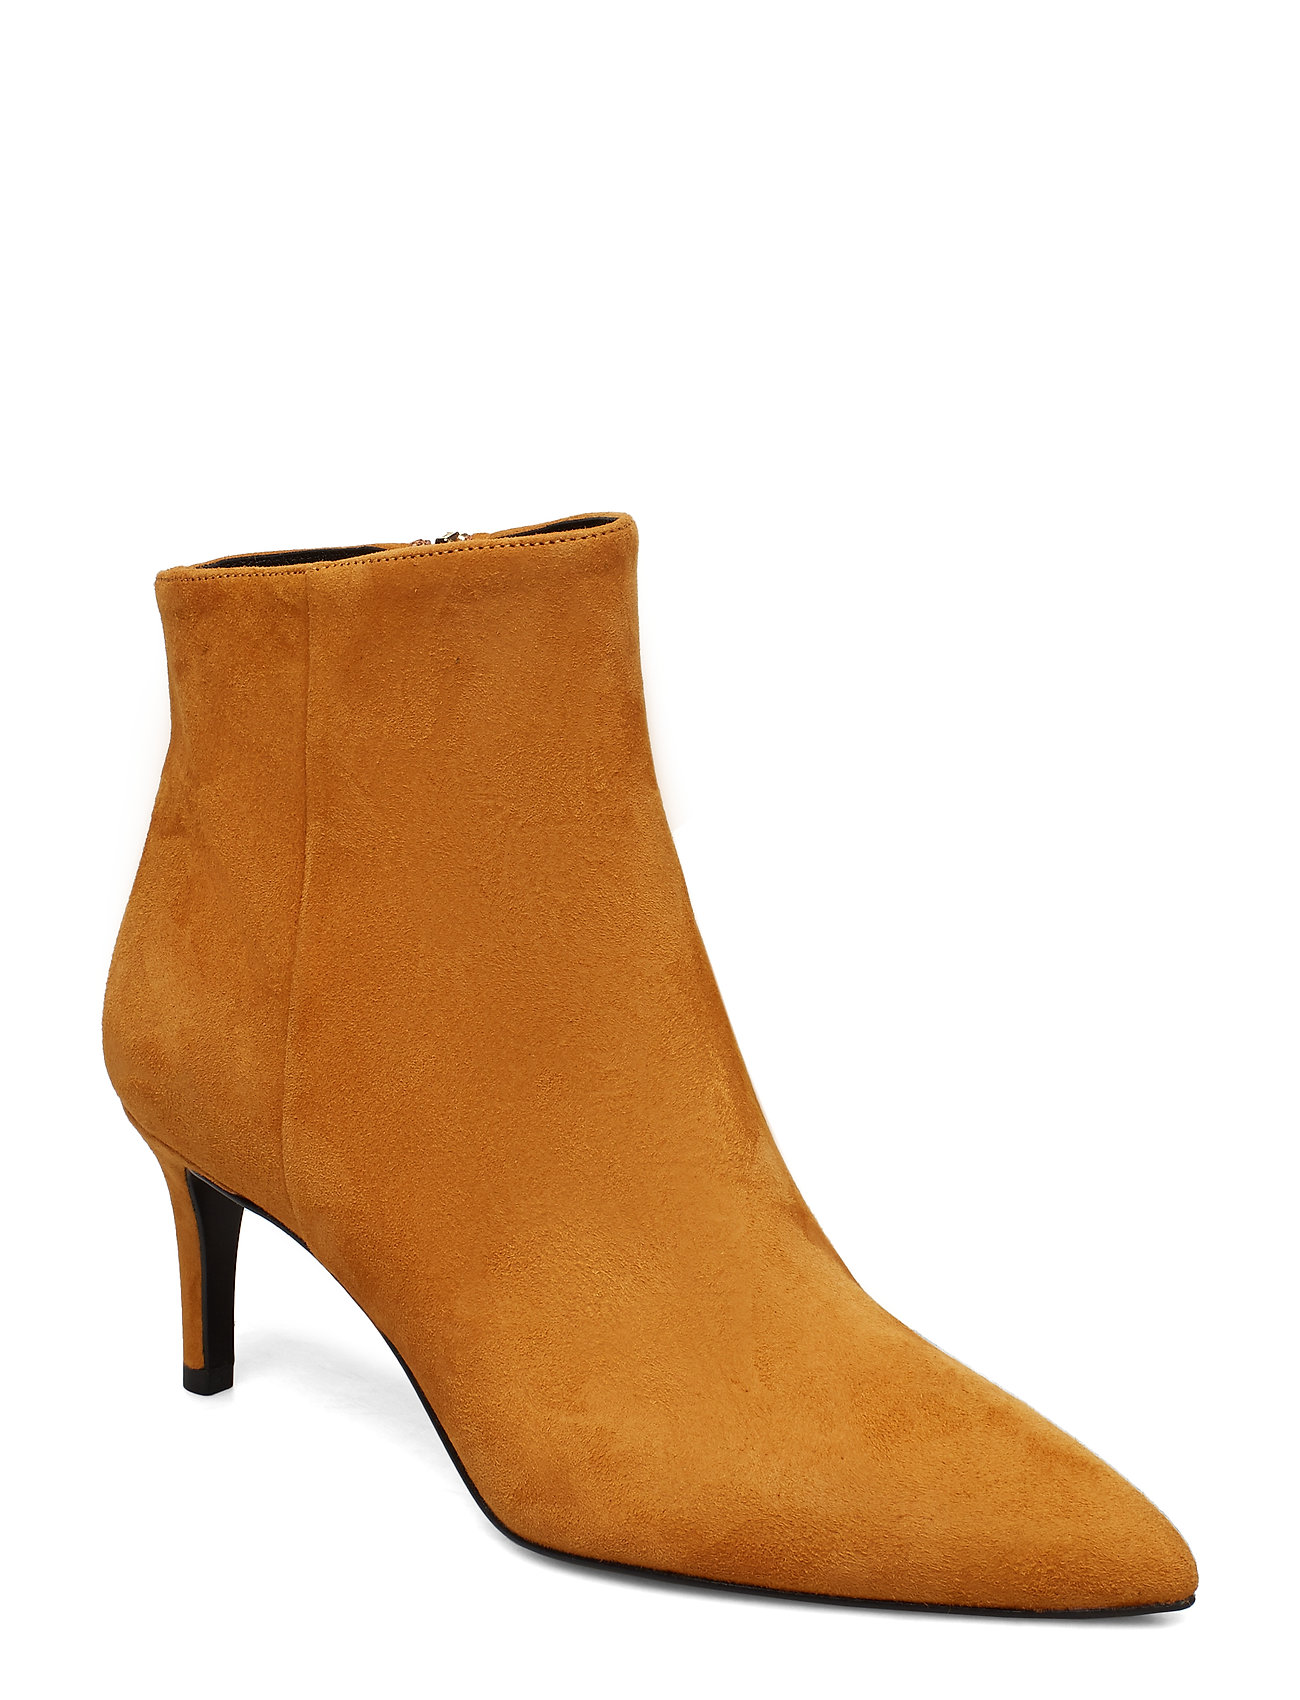 Image of Pointed Bootie Low High Front Shoes Boots Ankle Boots Ankle Boot - Heel Brun Apair (3406234711)